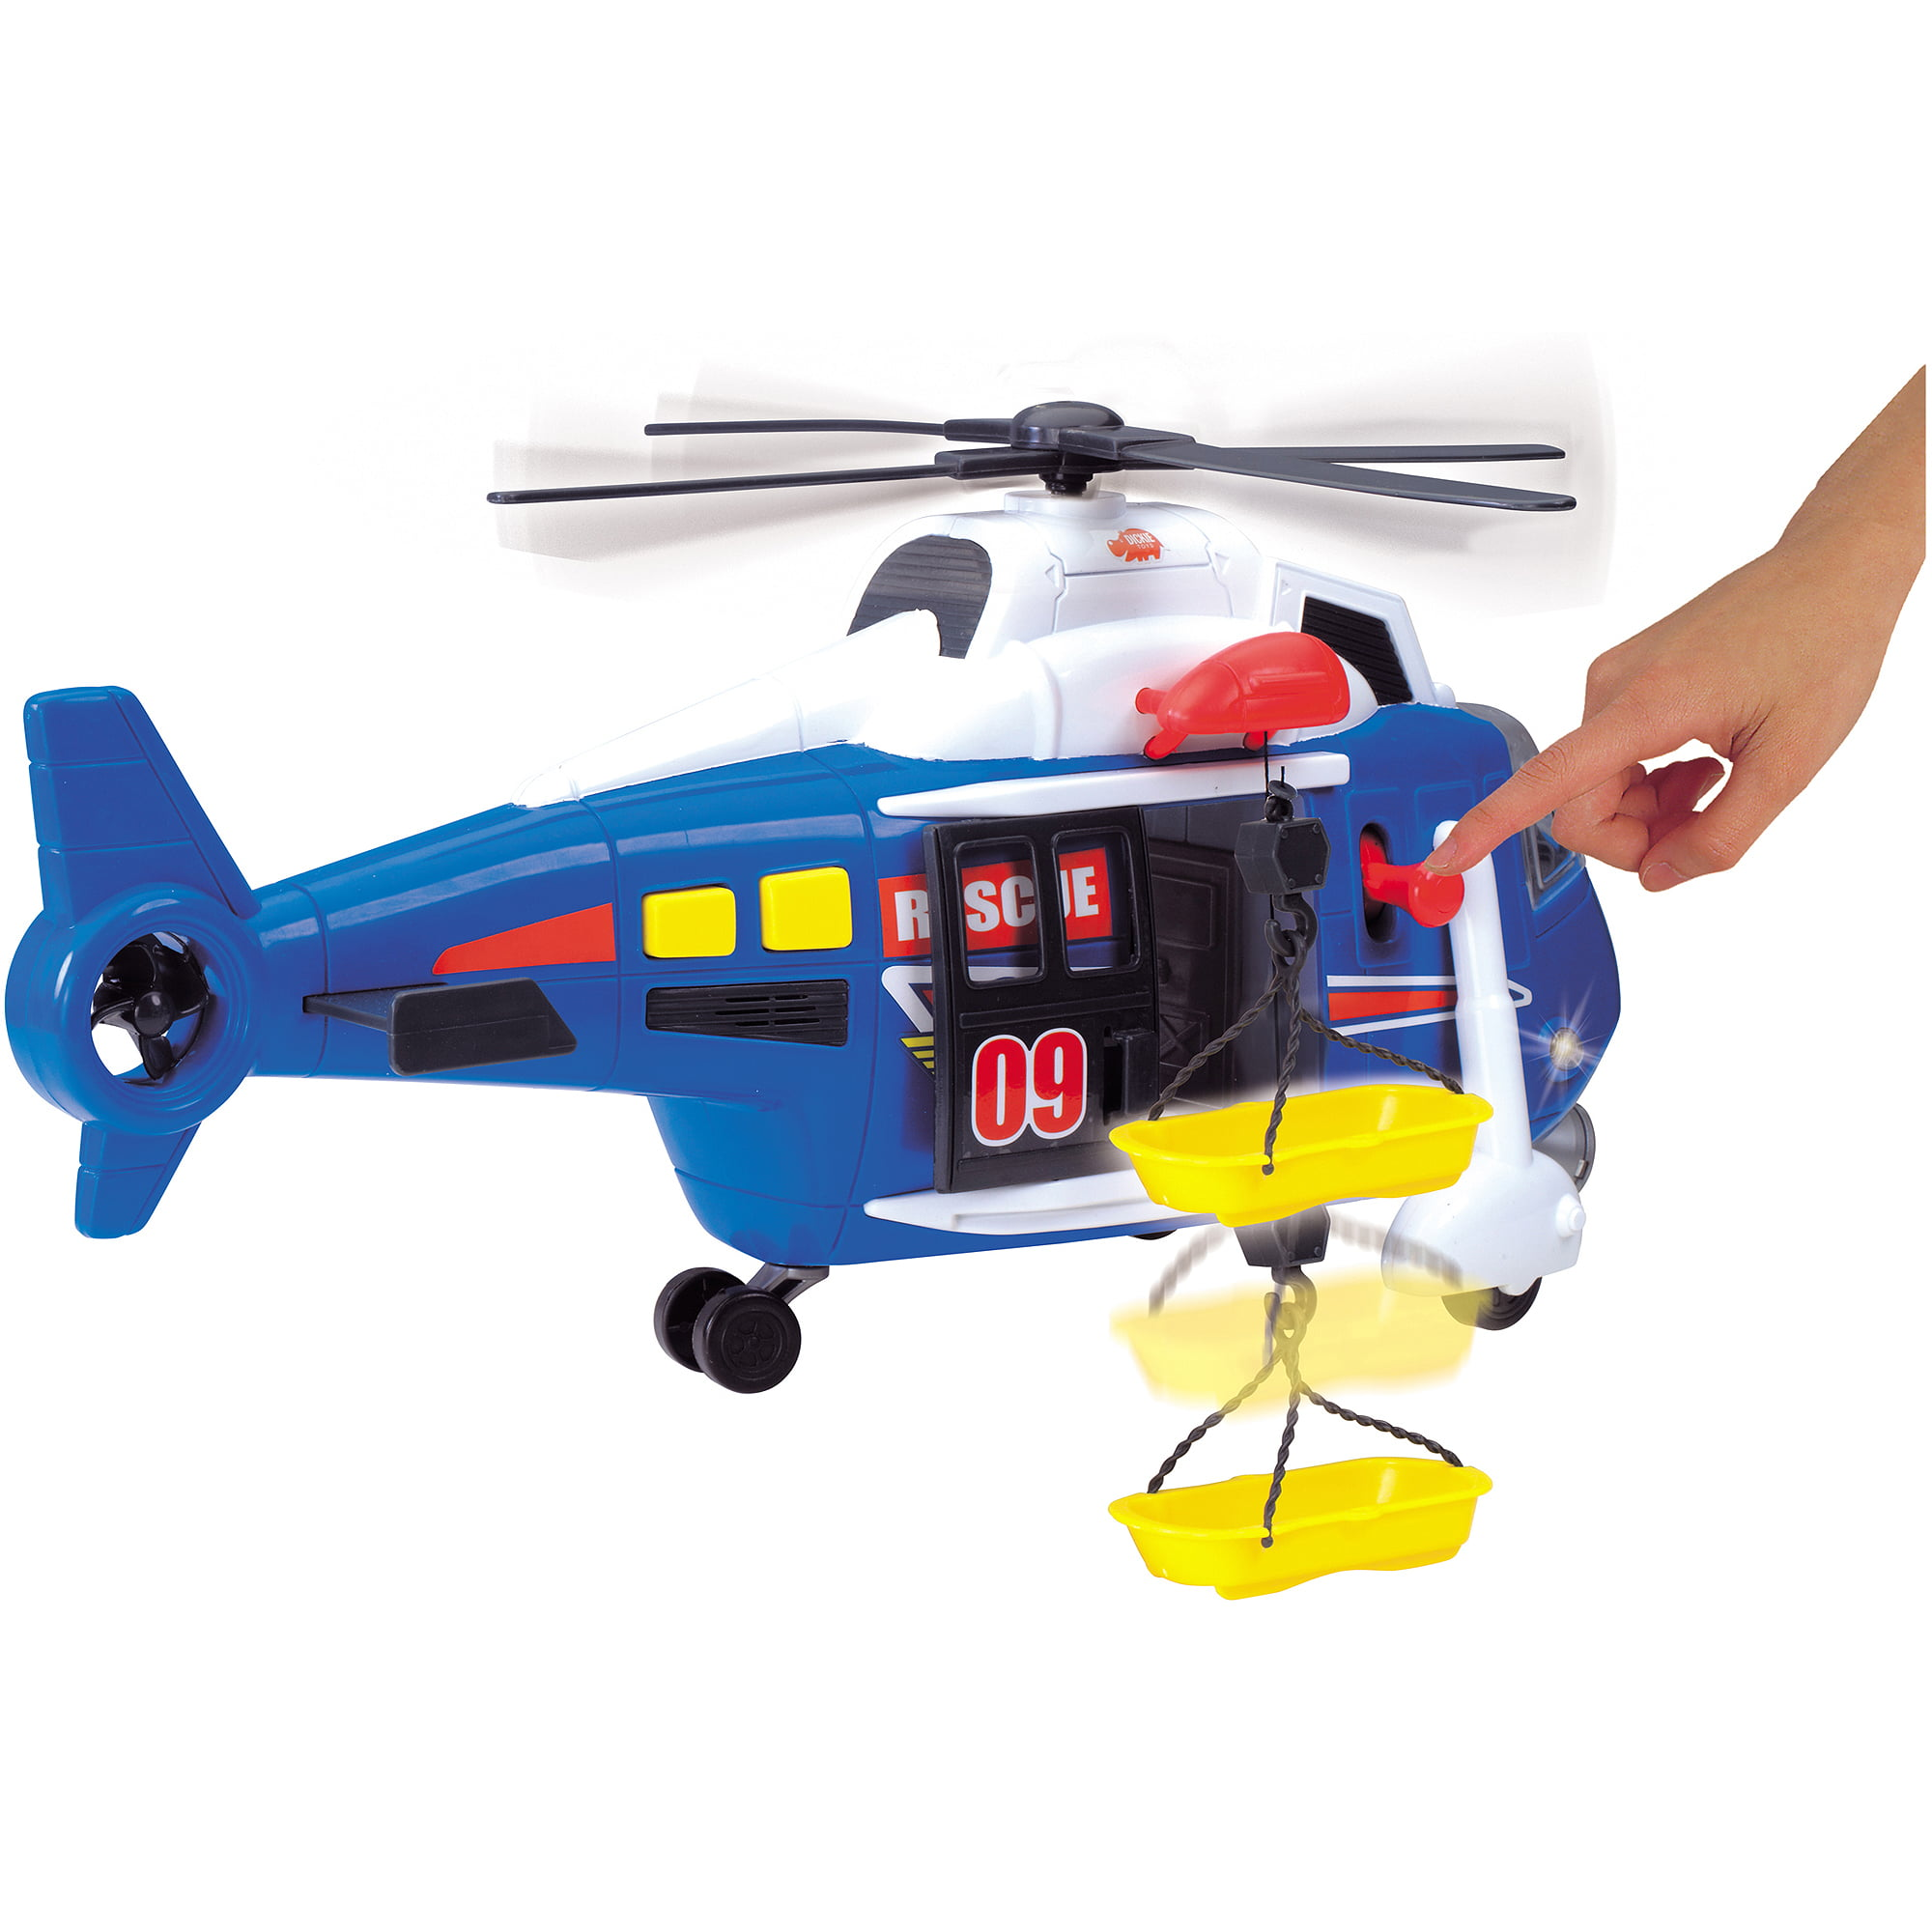 Dickie Toys Majorette Action Series Helicopter by Dickie Toys HK Ltd